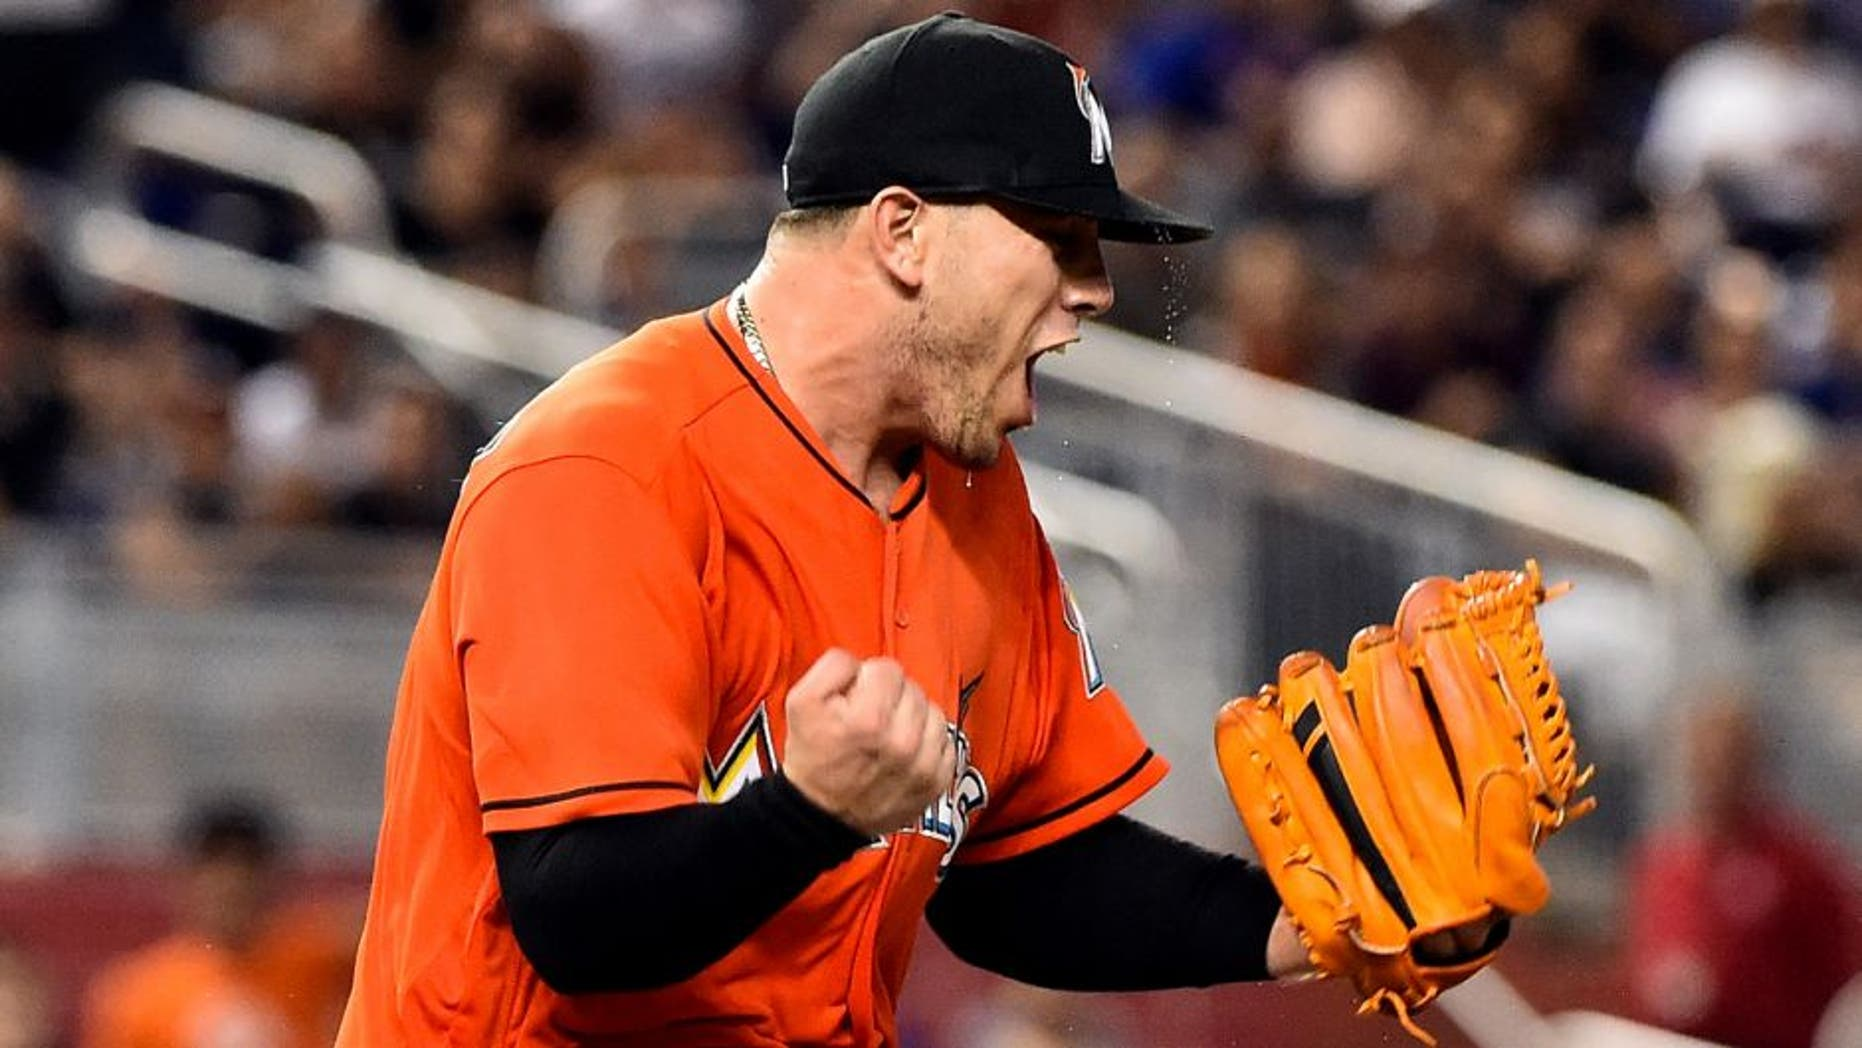 Jun 5, 2016; Miami, FL, USA; Miami Marlins starting pitcher Jose Fernandez (16) reacts on the pitchers mound during the seventh inning against the New York Mets at Marlins Park. The Marlins won 1-0. Mandatory Credit: Steve Mitchell-USA TODAY Sports